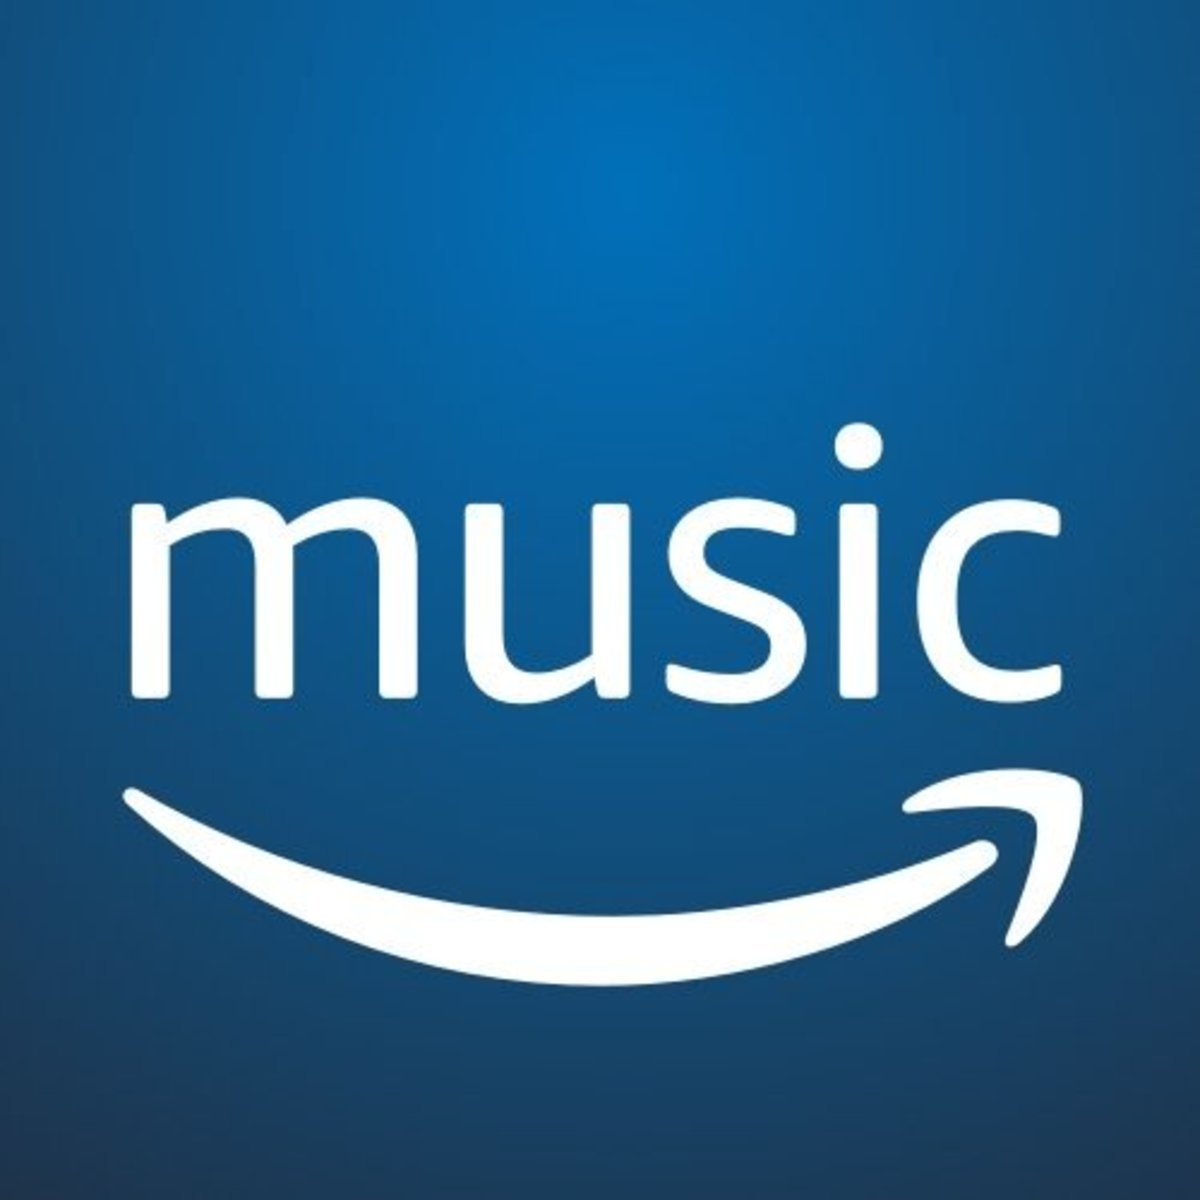 Amazon Prime Music is a good service that is a great deal since it is bundled with Amazon Prime. As a pure music streaming service, it does leave a lot to be desired.